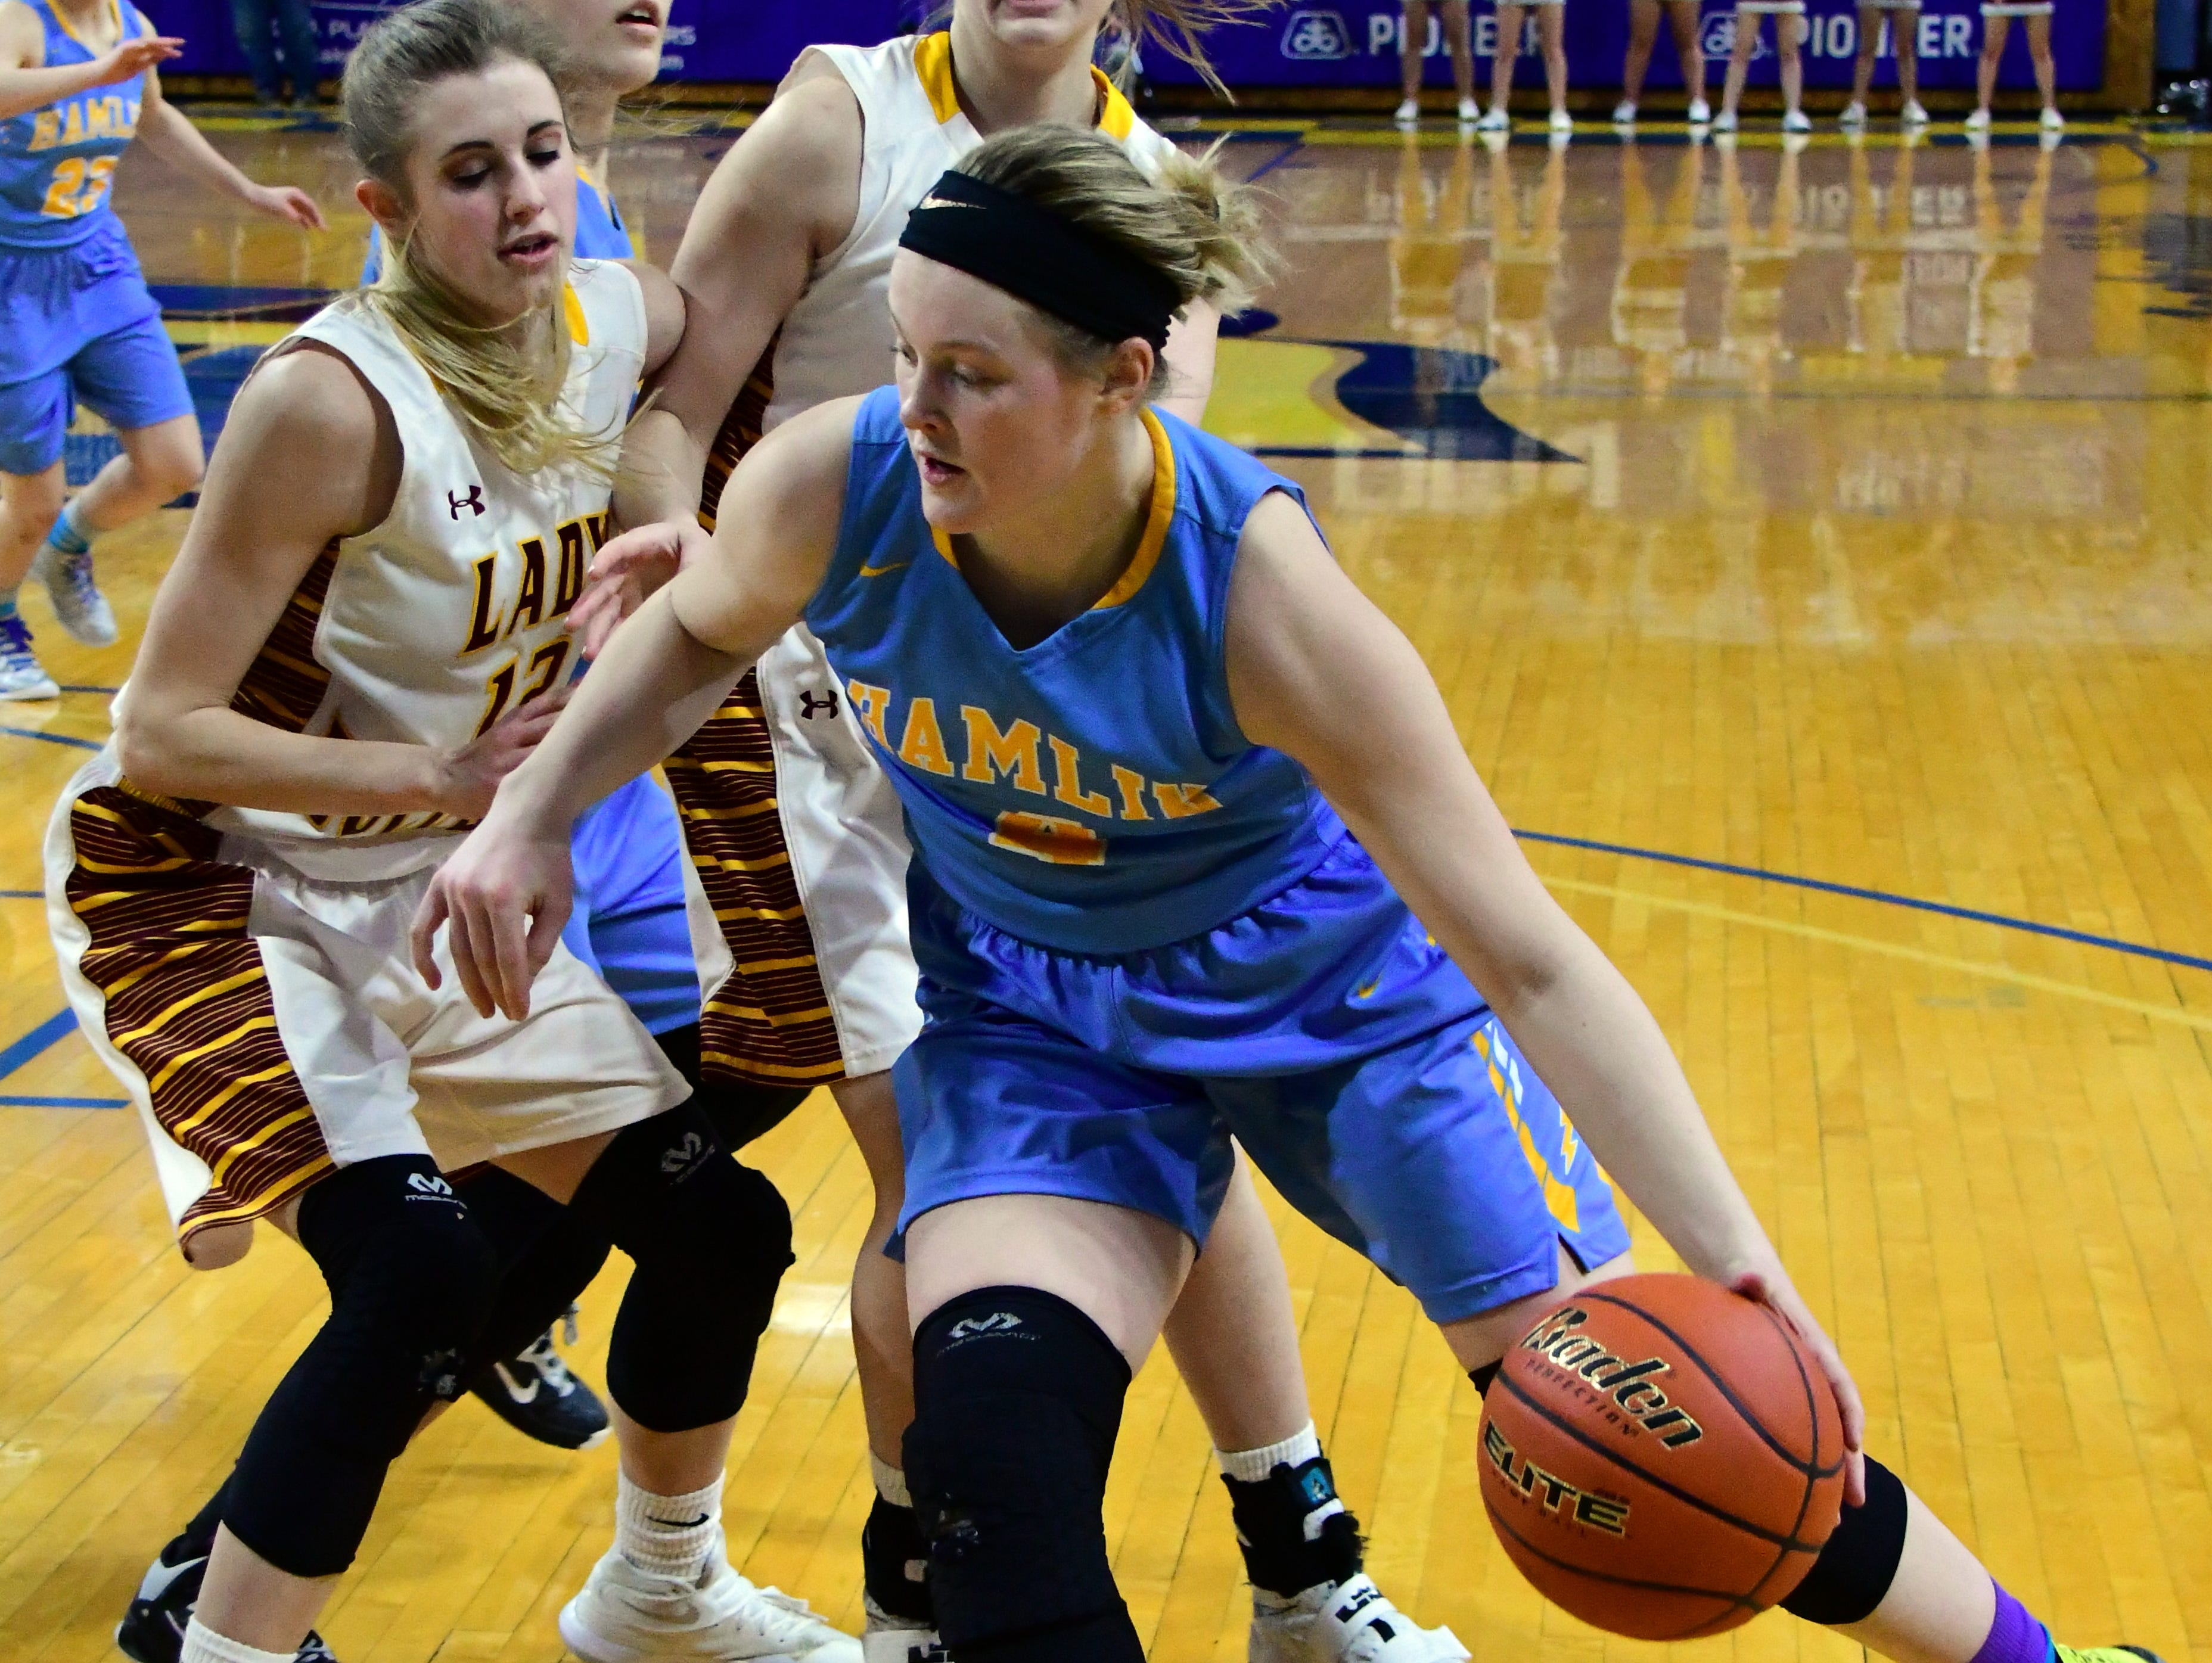 Hamlin's Lexi Wadsworth drives around a pair of Madison defenders during the Class A girls 5th place game.